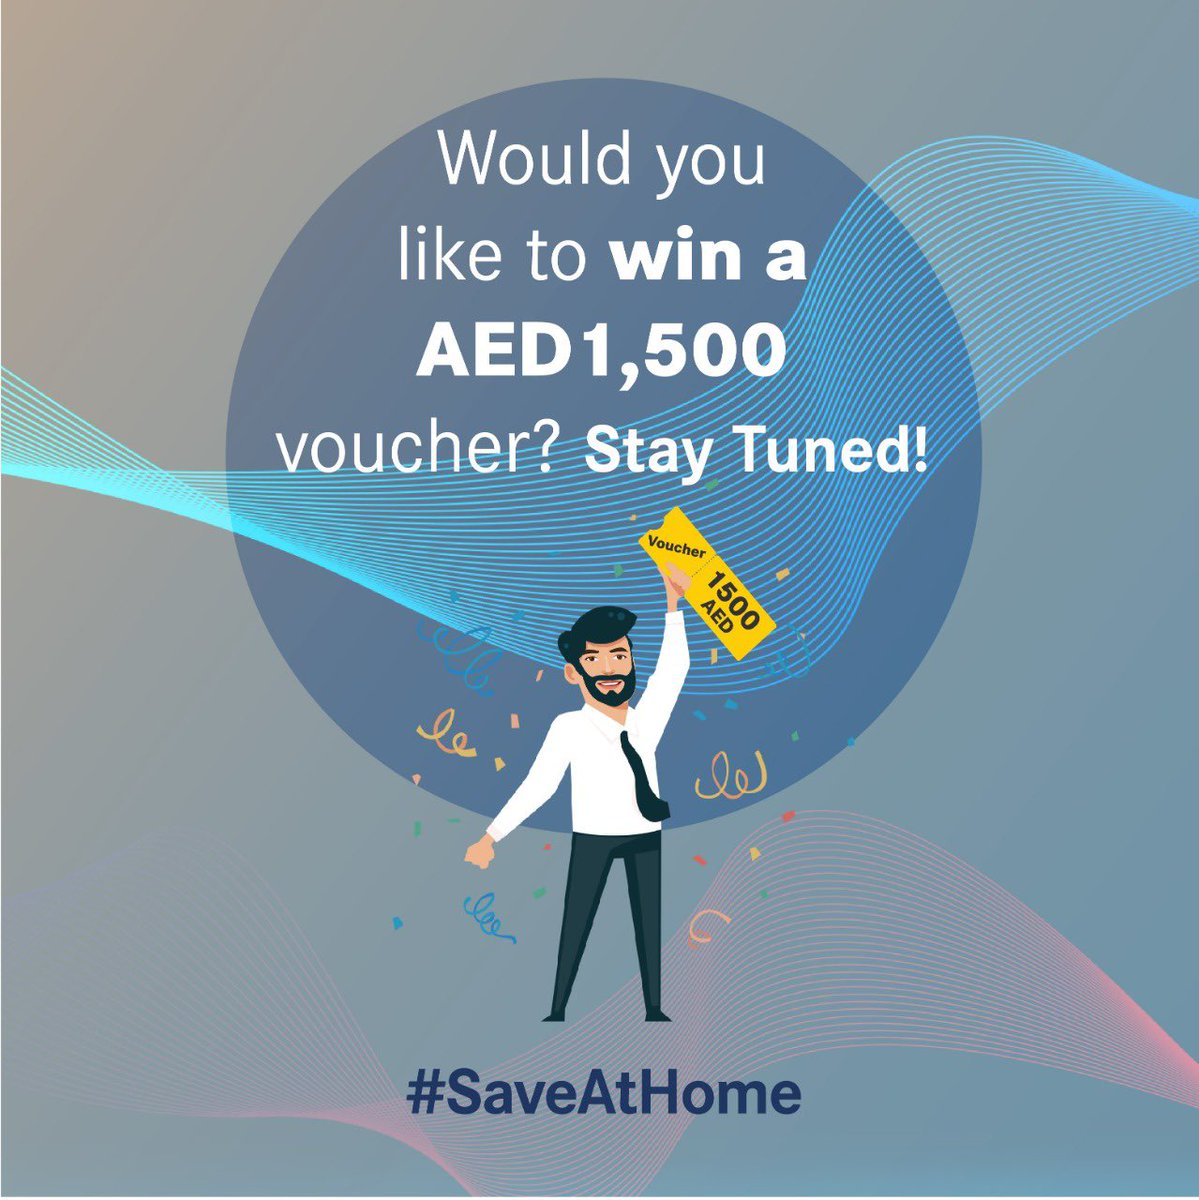 Would you like to win a AED1,500 voucher?  Stay Tuned! #SaveAtHome #UseItWisely  #OurCommitment #OurNationsPower  #YouAreResponsible #DoE #UAE #EnergyConservation #EnergySustainability #EnergySaving #Conservation #AbuDhabi #Energy #TowardsaNewEnergyEra https://t.co/GqAnzvihvR